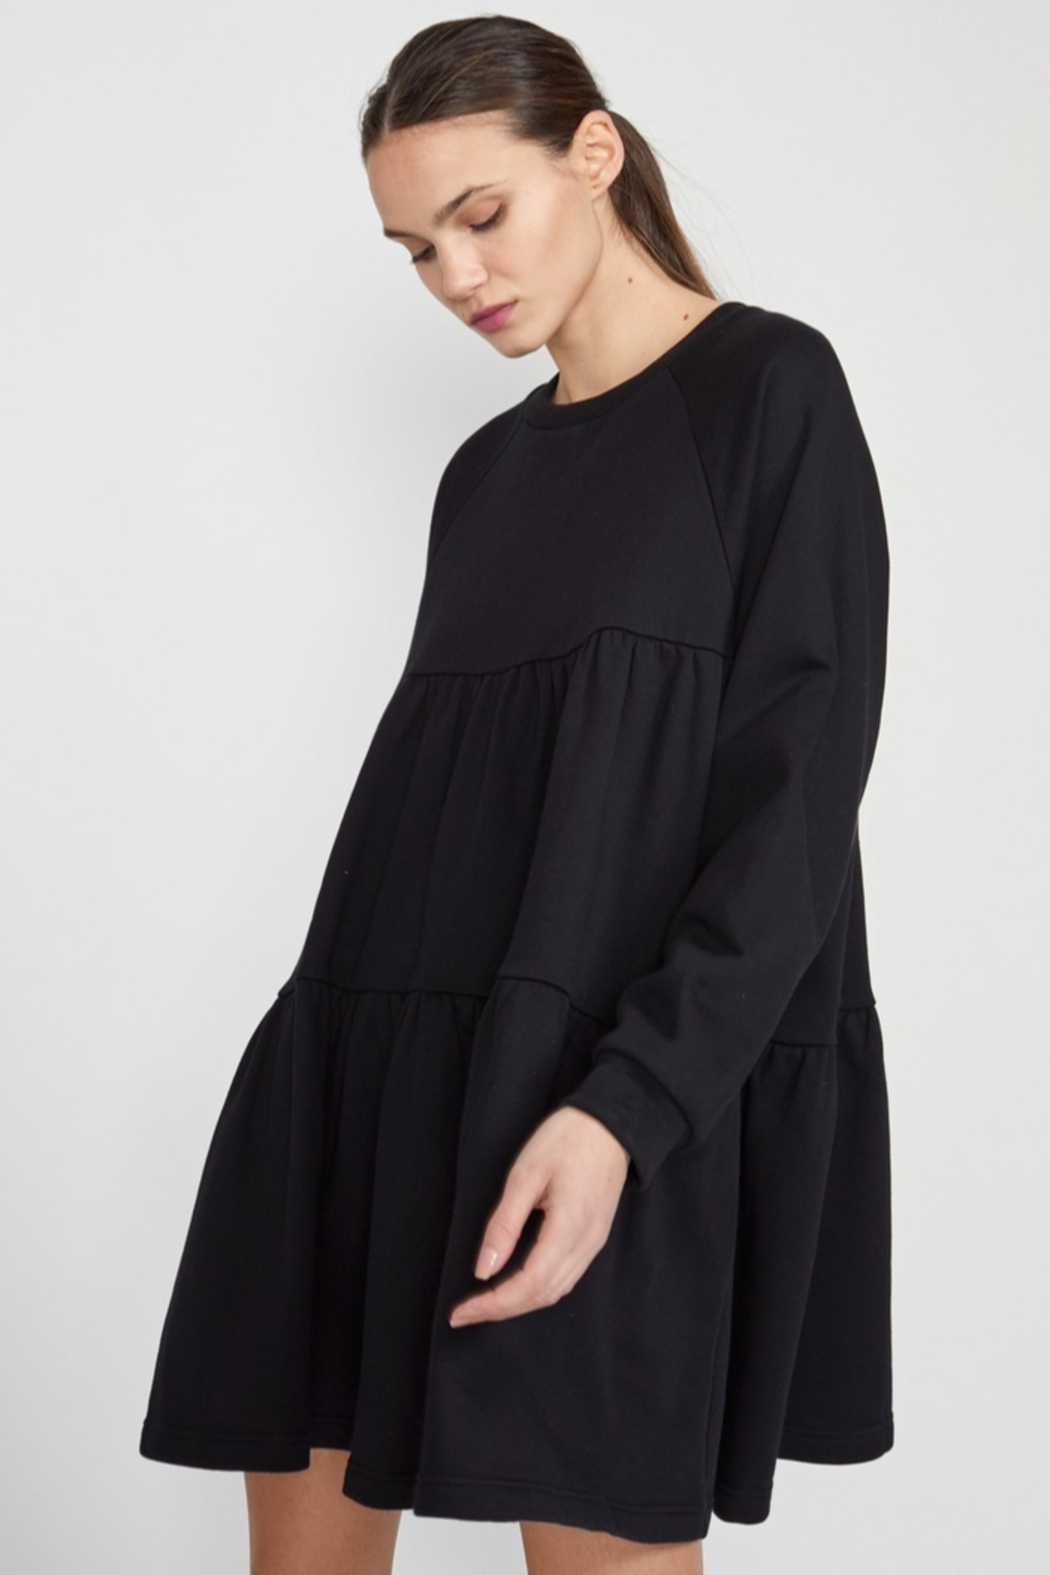 Cynthia Rowley Vail Cozy Swing Dress - Back Cropped Image